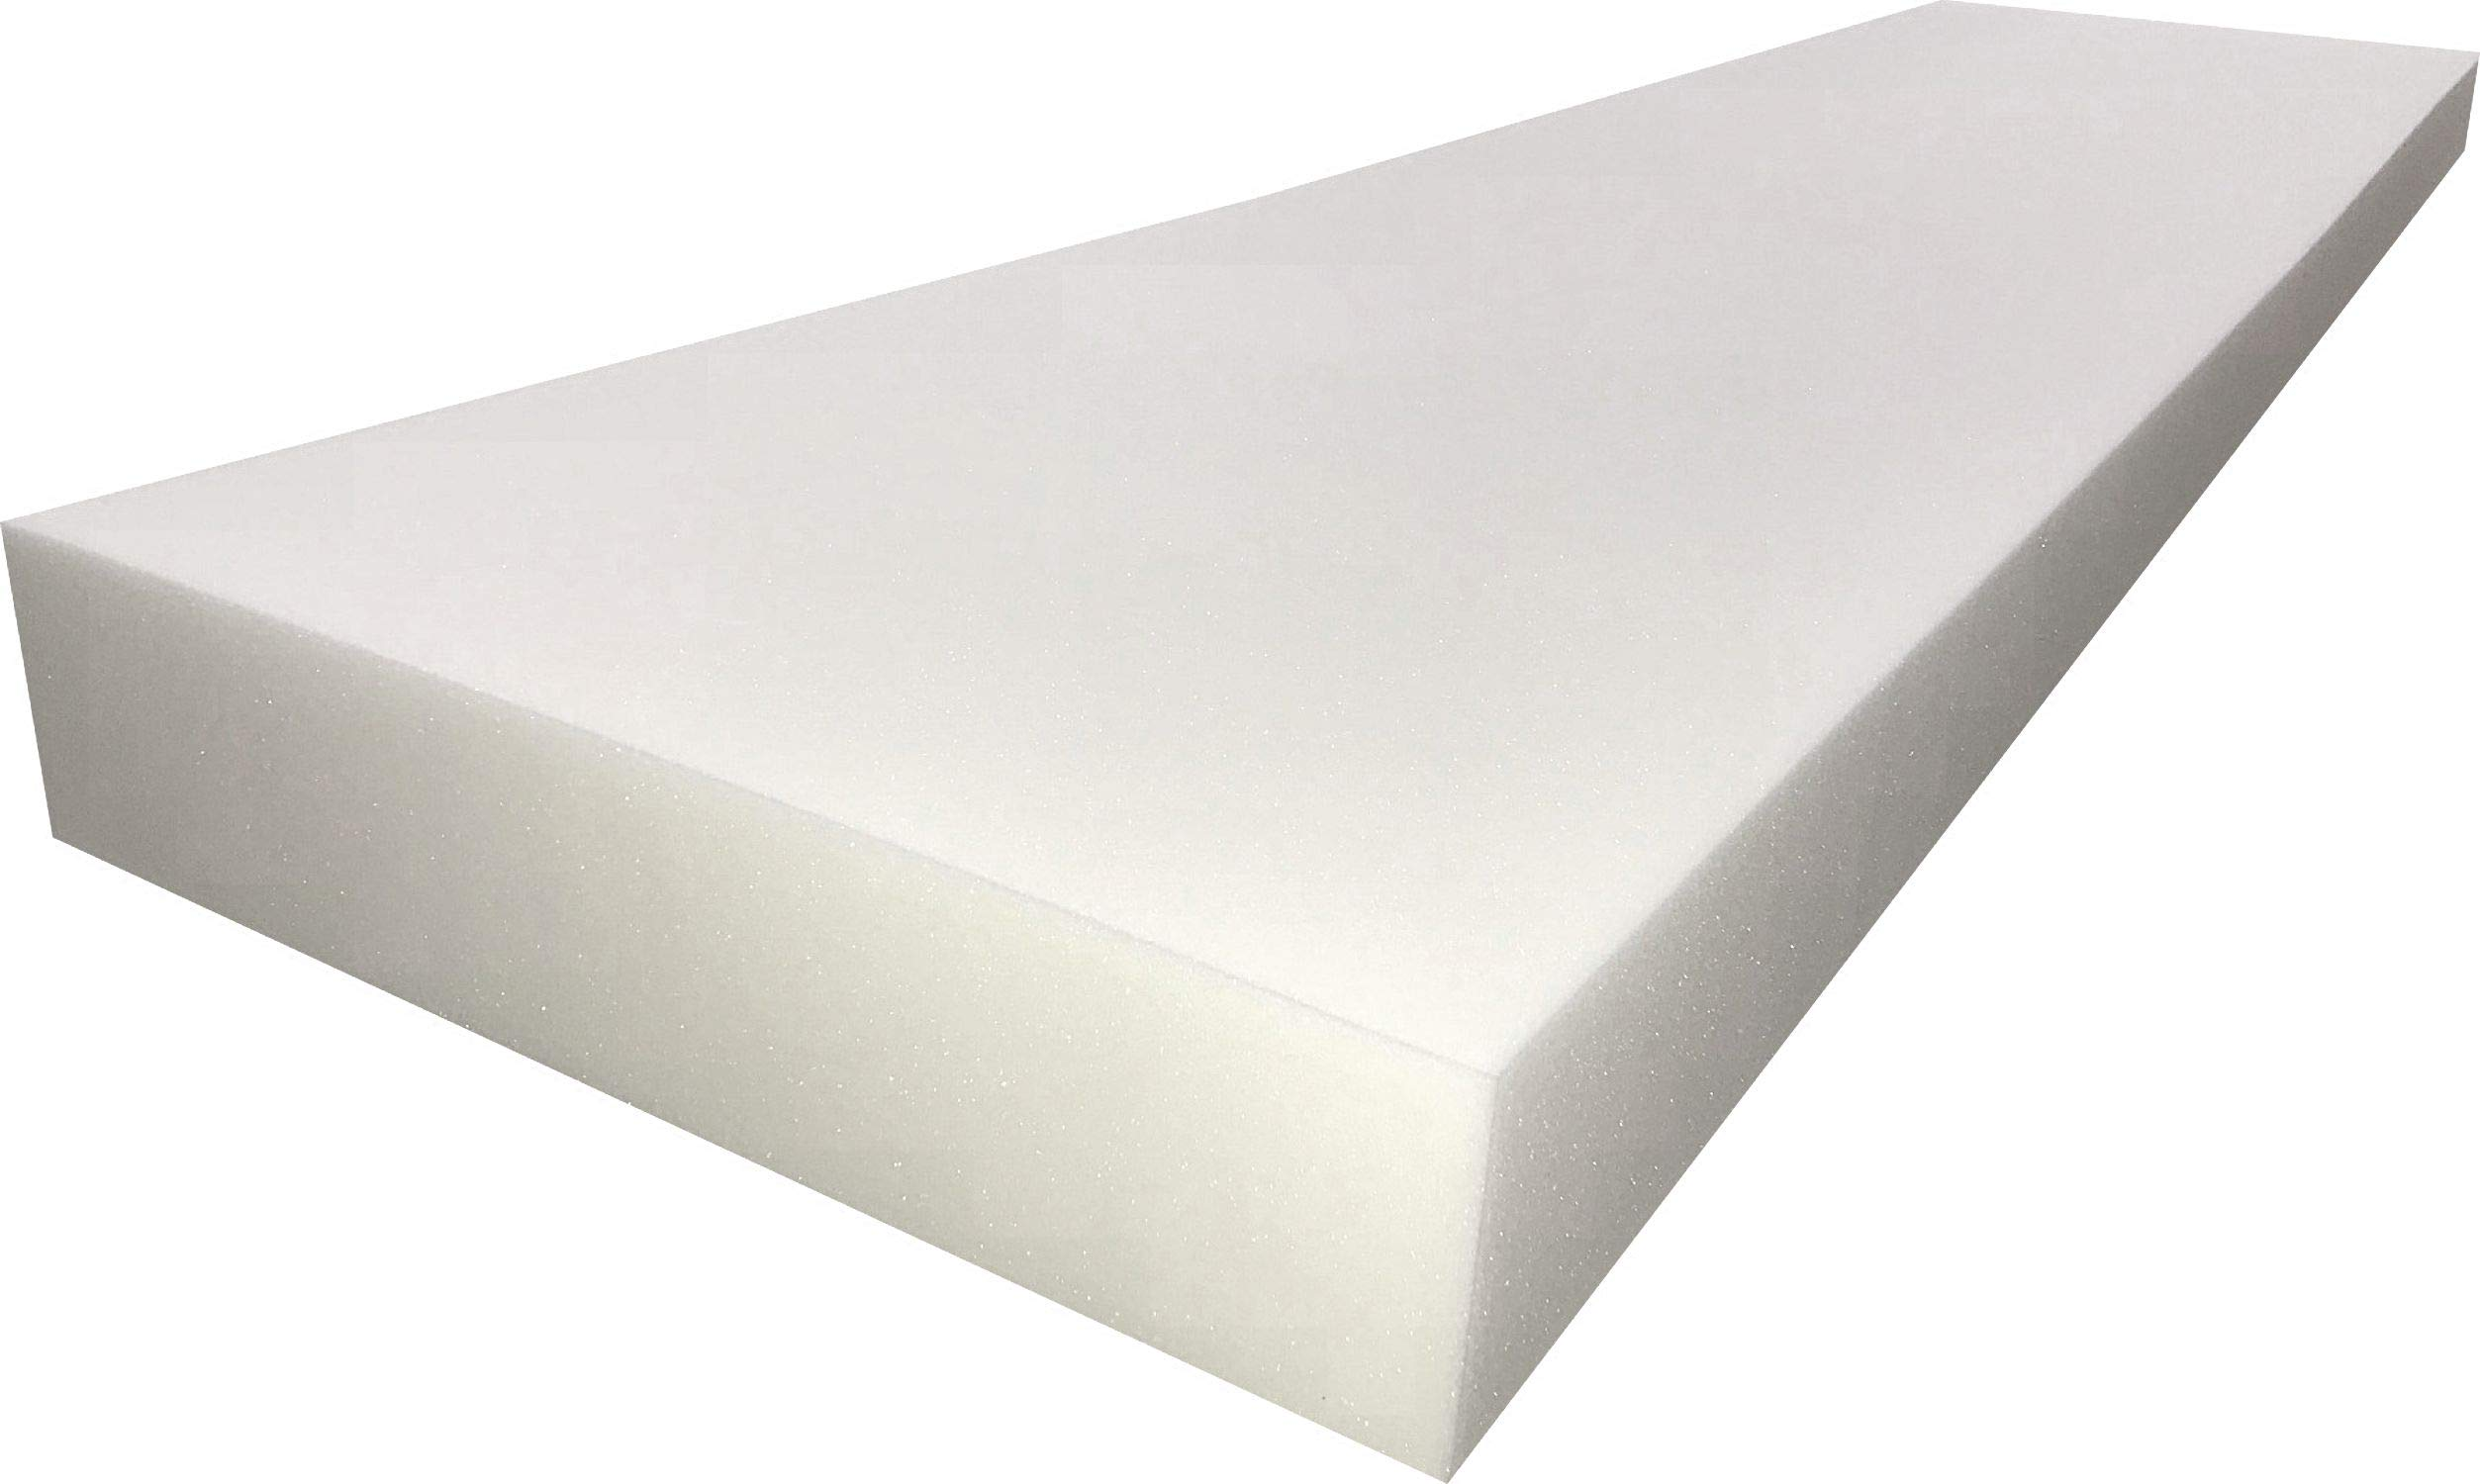 FoamTouch Upholstery Cushion Medium Density Standard(Seat Replacement, Sheet, Foam Padding), 3'' L x 24'' W x 72'' H by FoamTouch